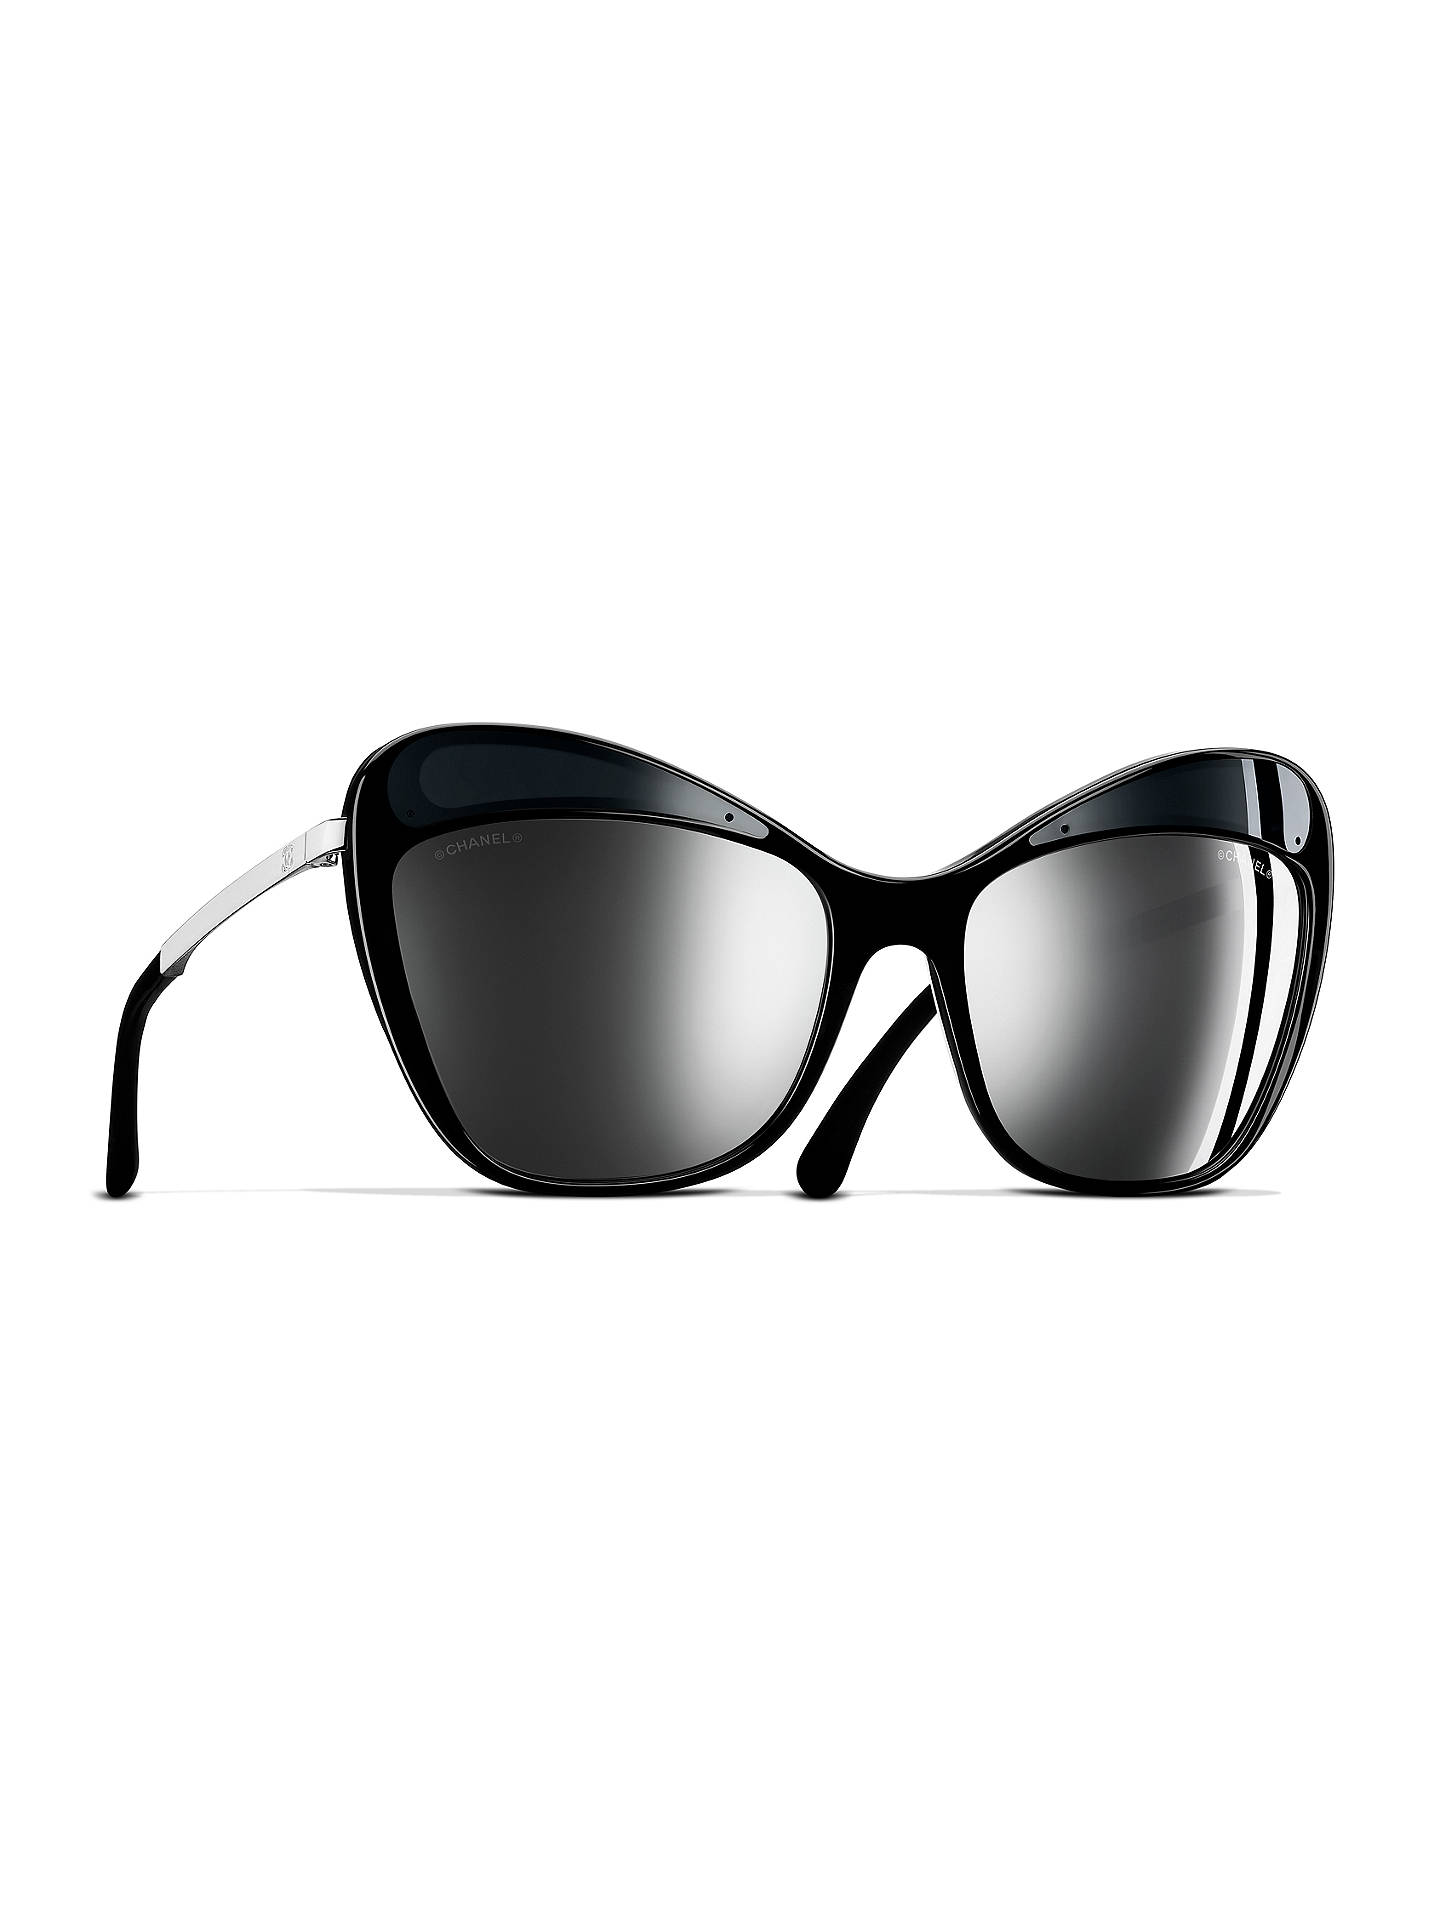 c94ff16eda BuyCHANEL Butterfly Sunglasses CH5377 Silver Black Online at johnlewis.com  ...